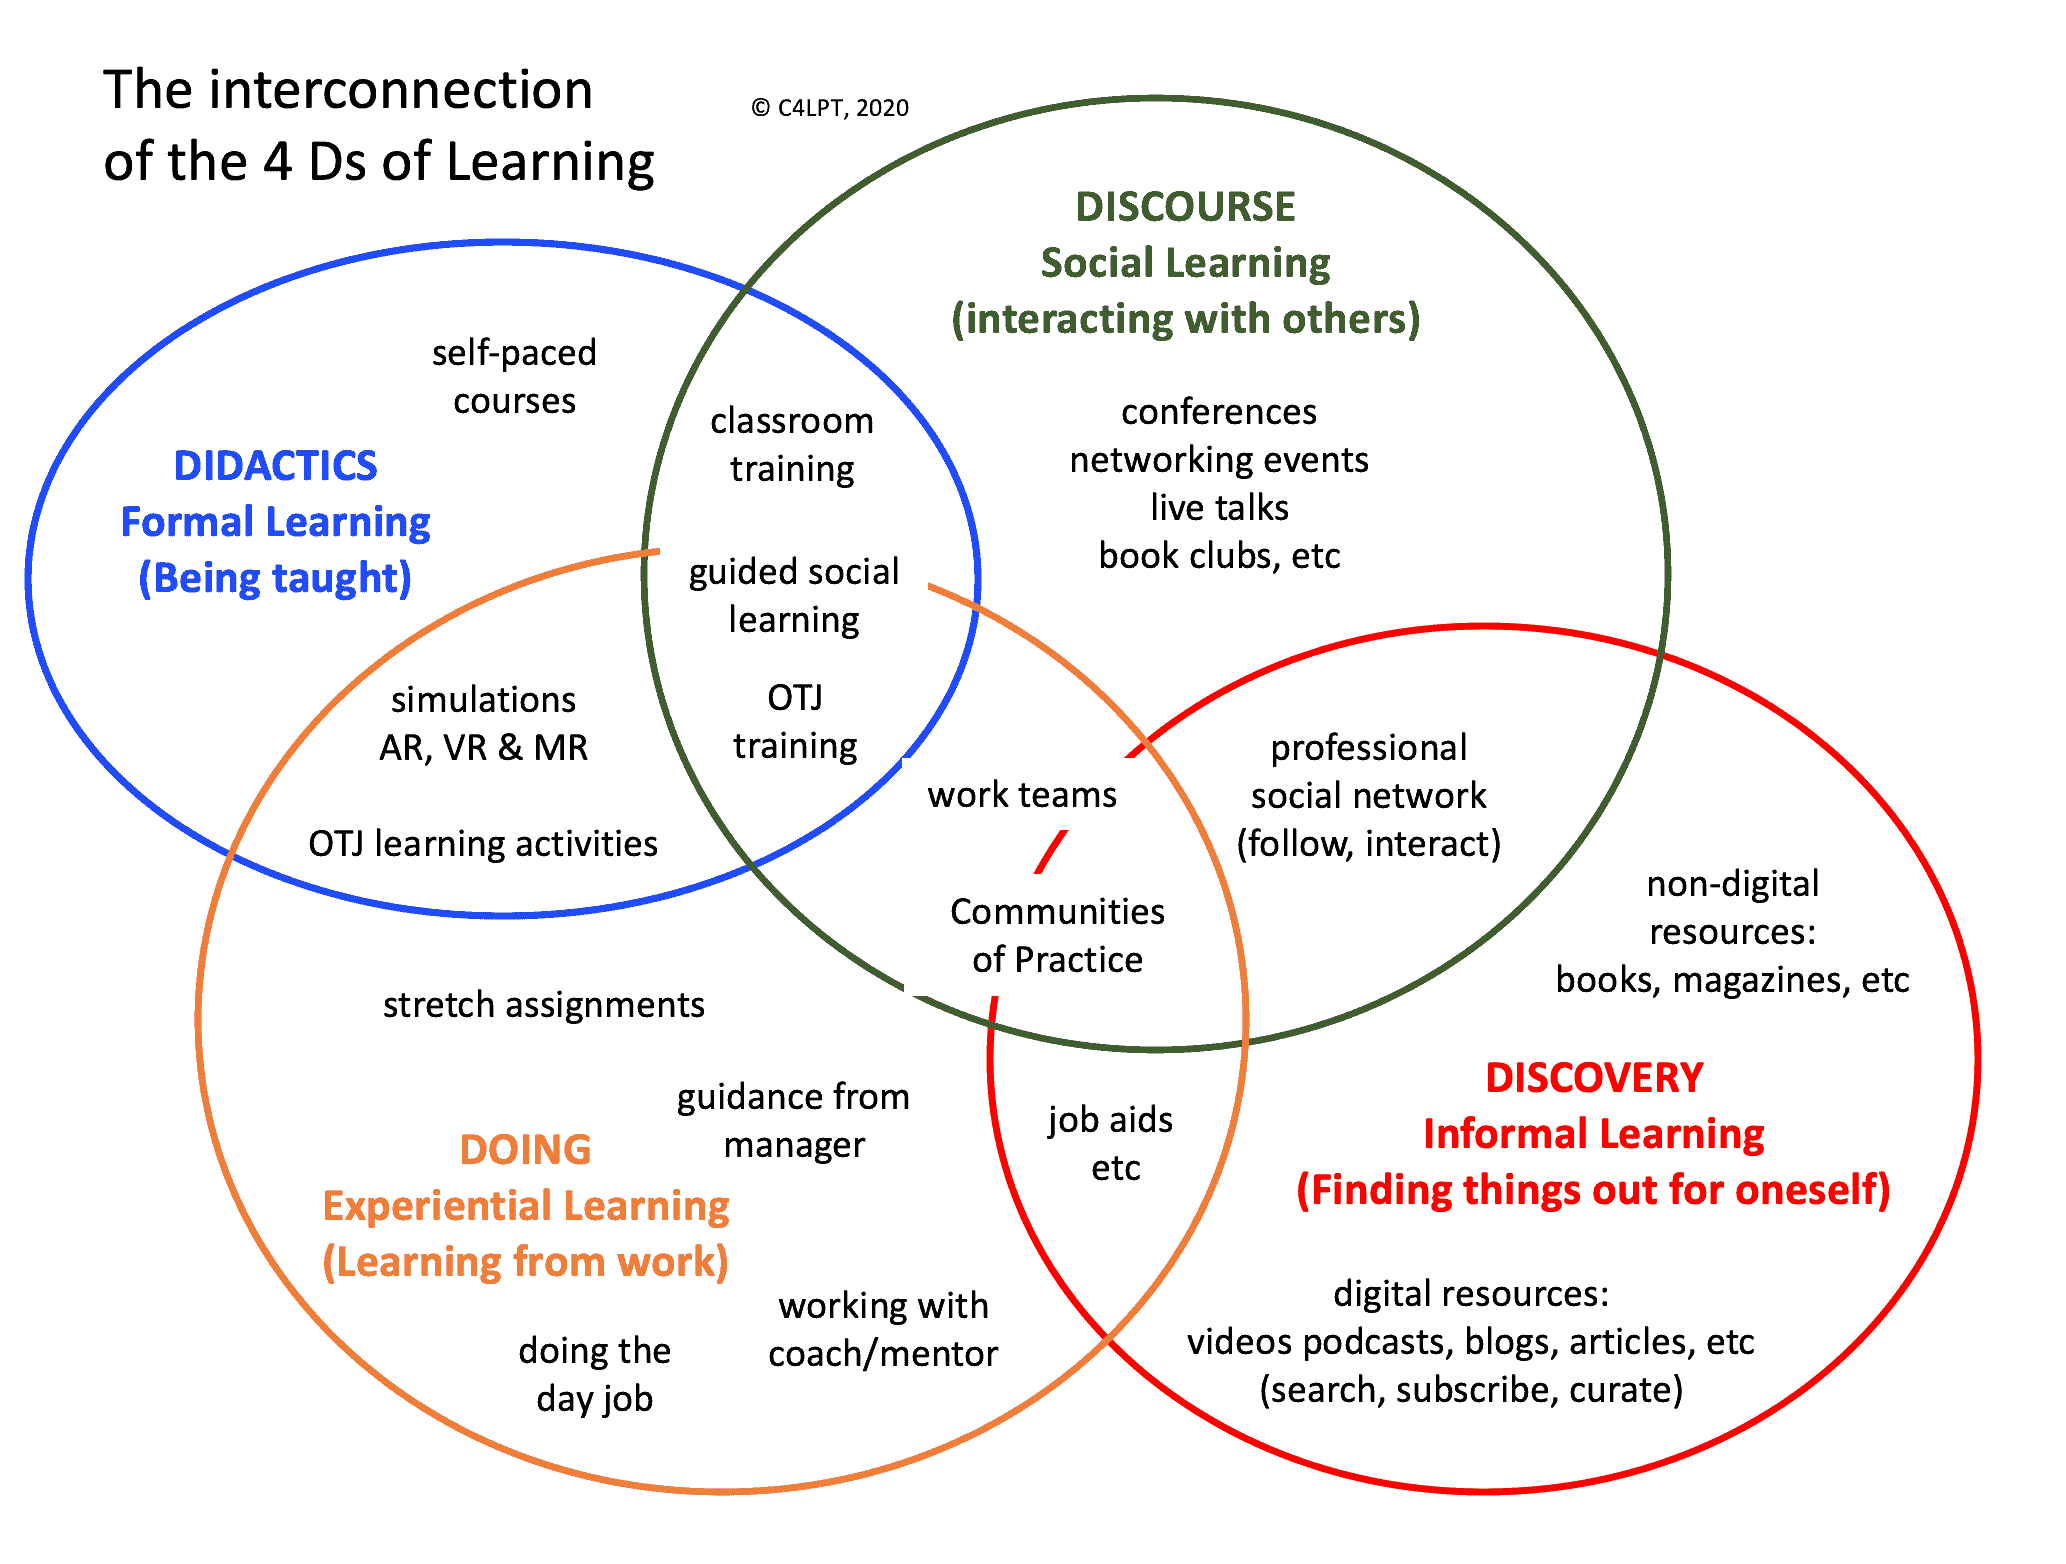 The 4 D's of Learning: Modern Workplace Learning